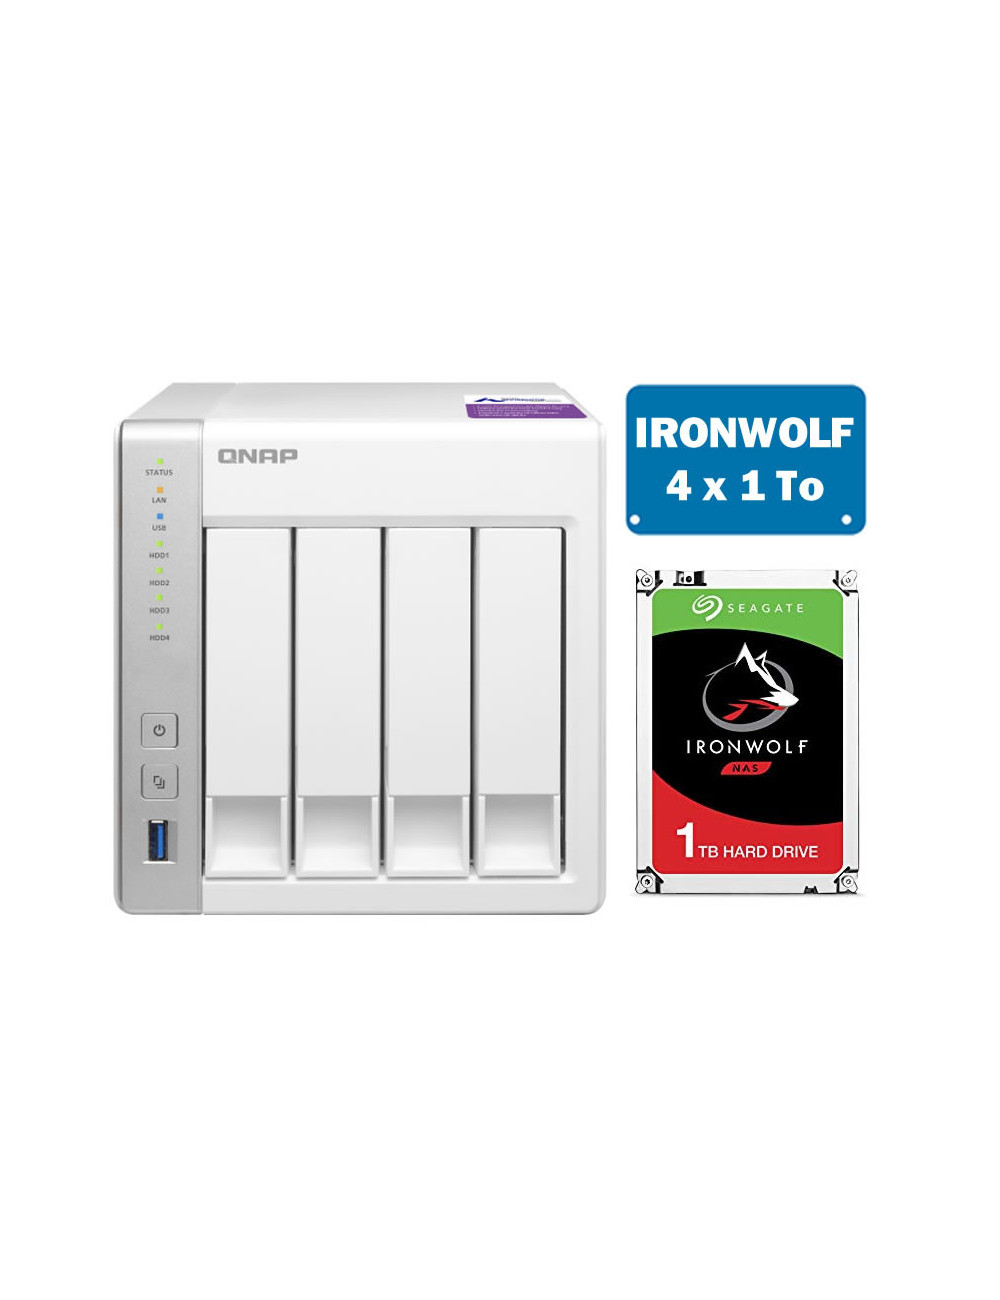 QNAP TS-431P Serveur NAS IRONWOLF 4 To